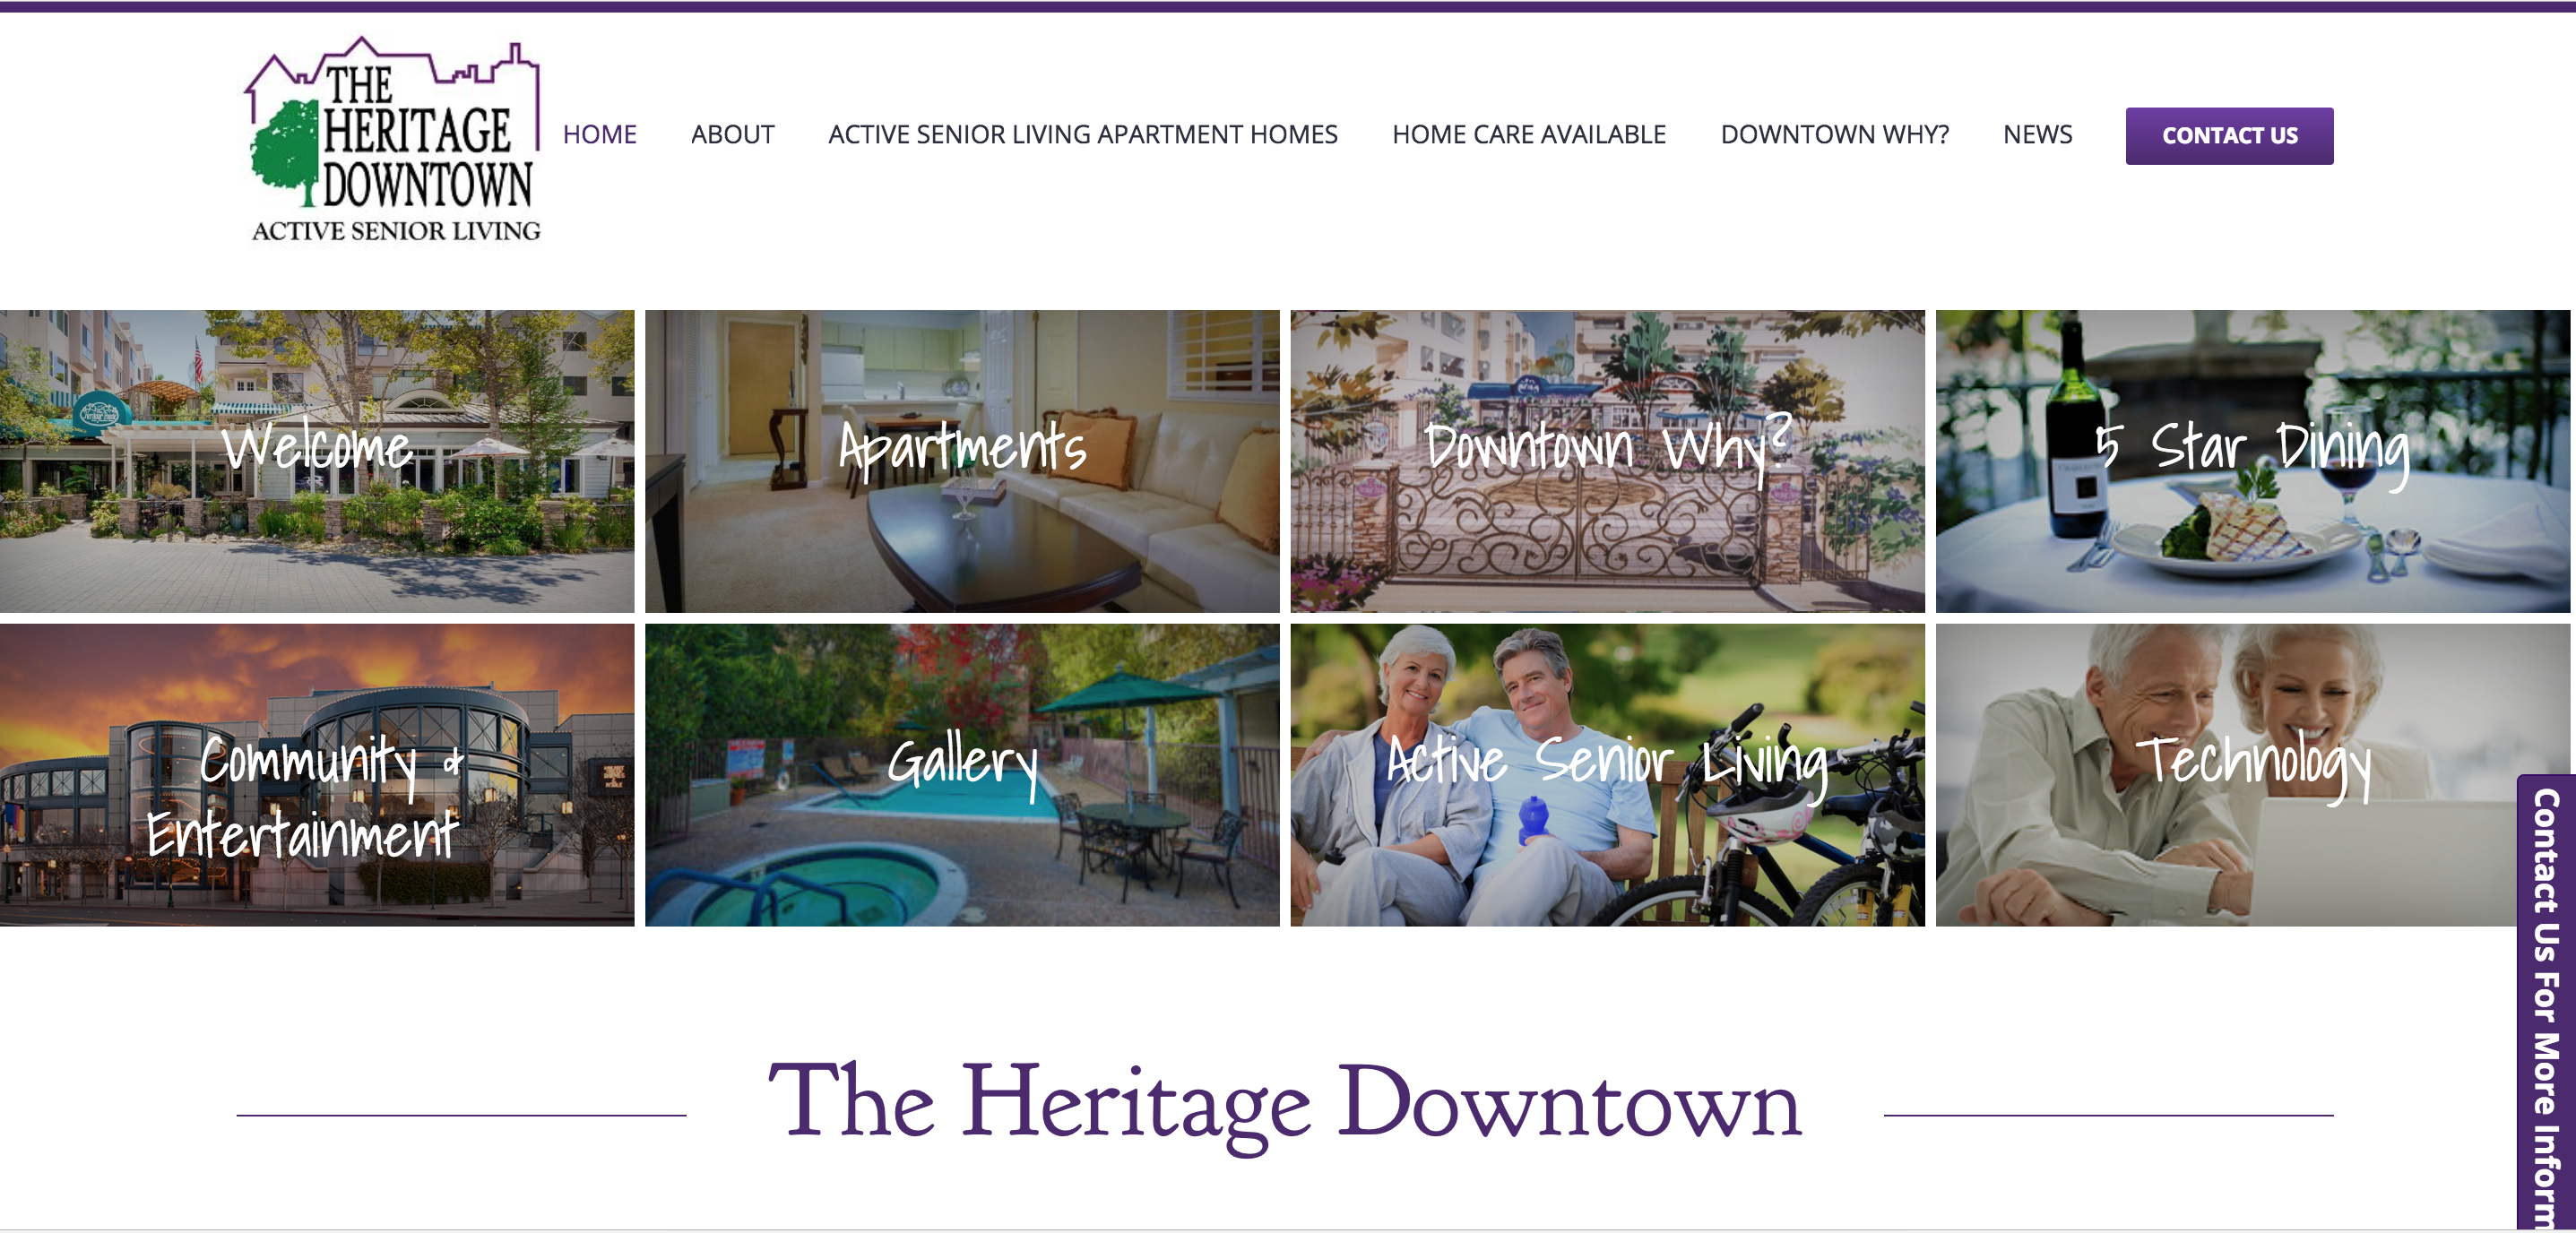 The Heritage Downtown Website Home Page